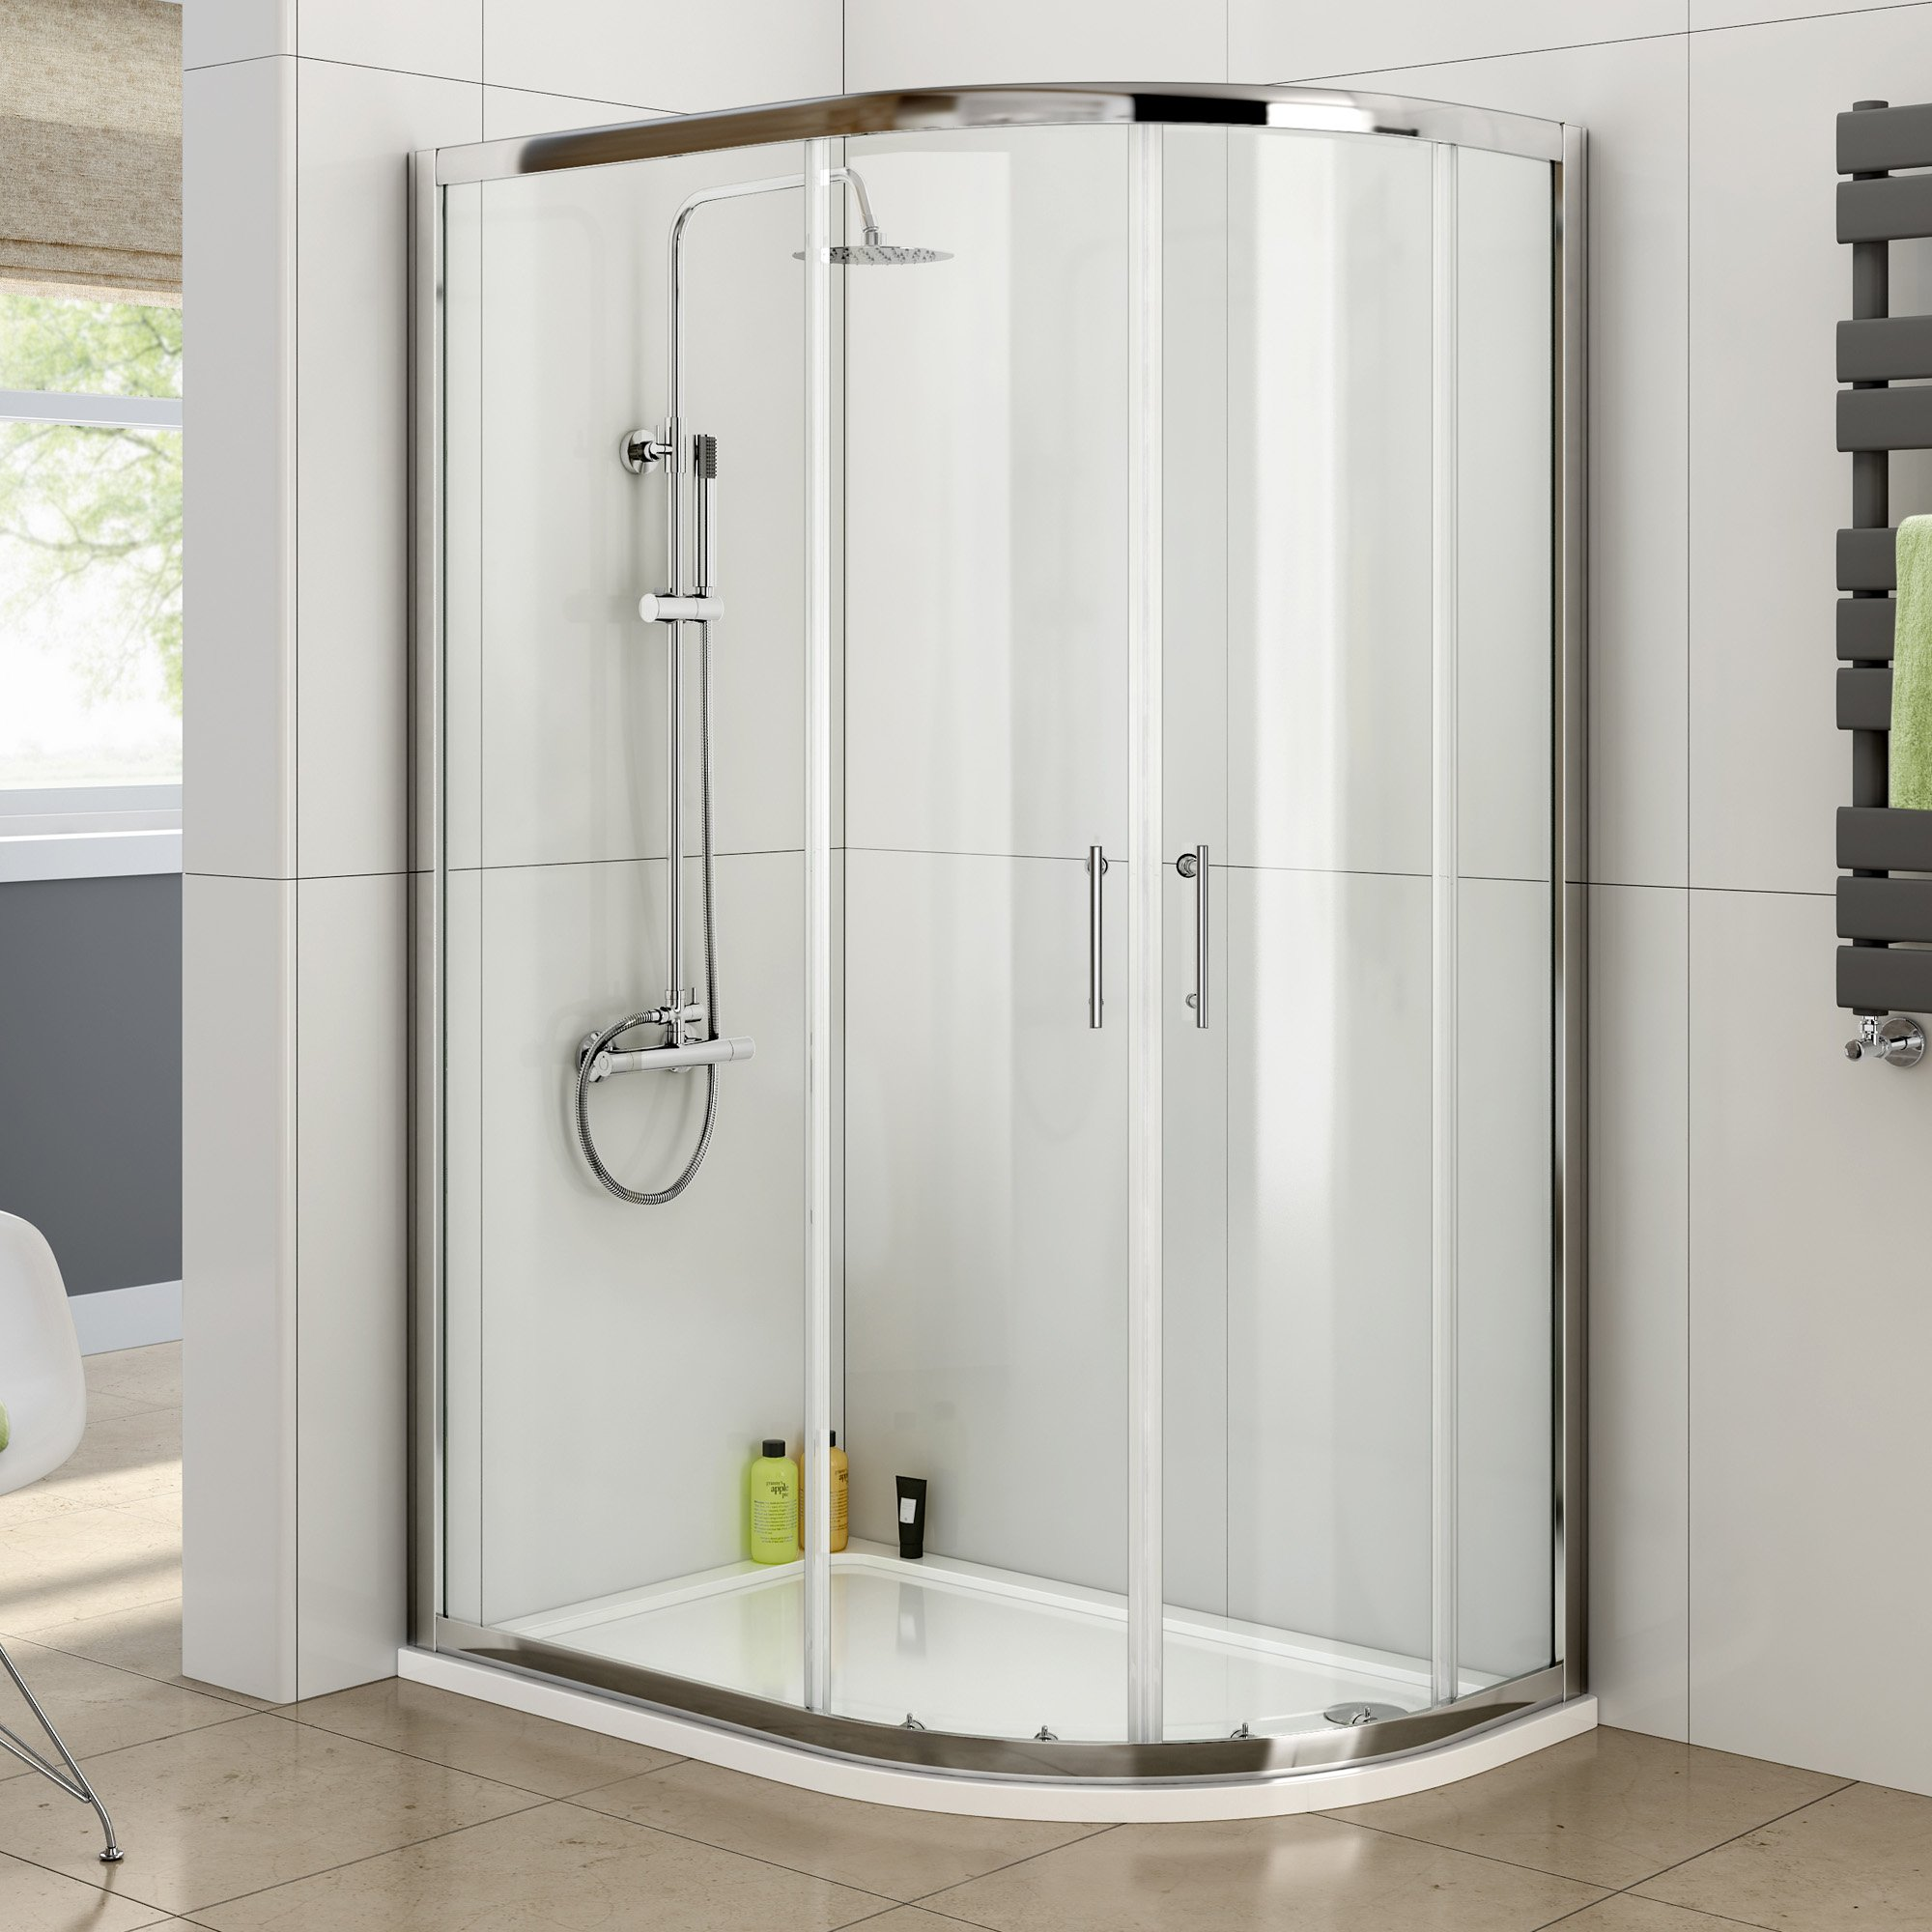 Shower Cubicles With Trays: Amazon.co.uk